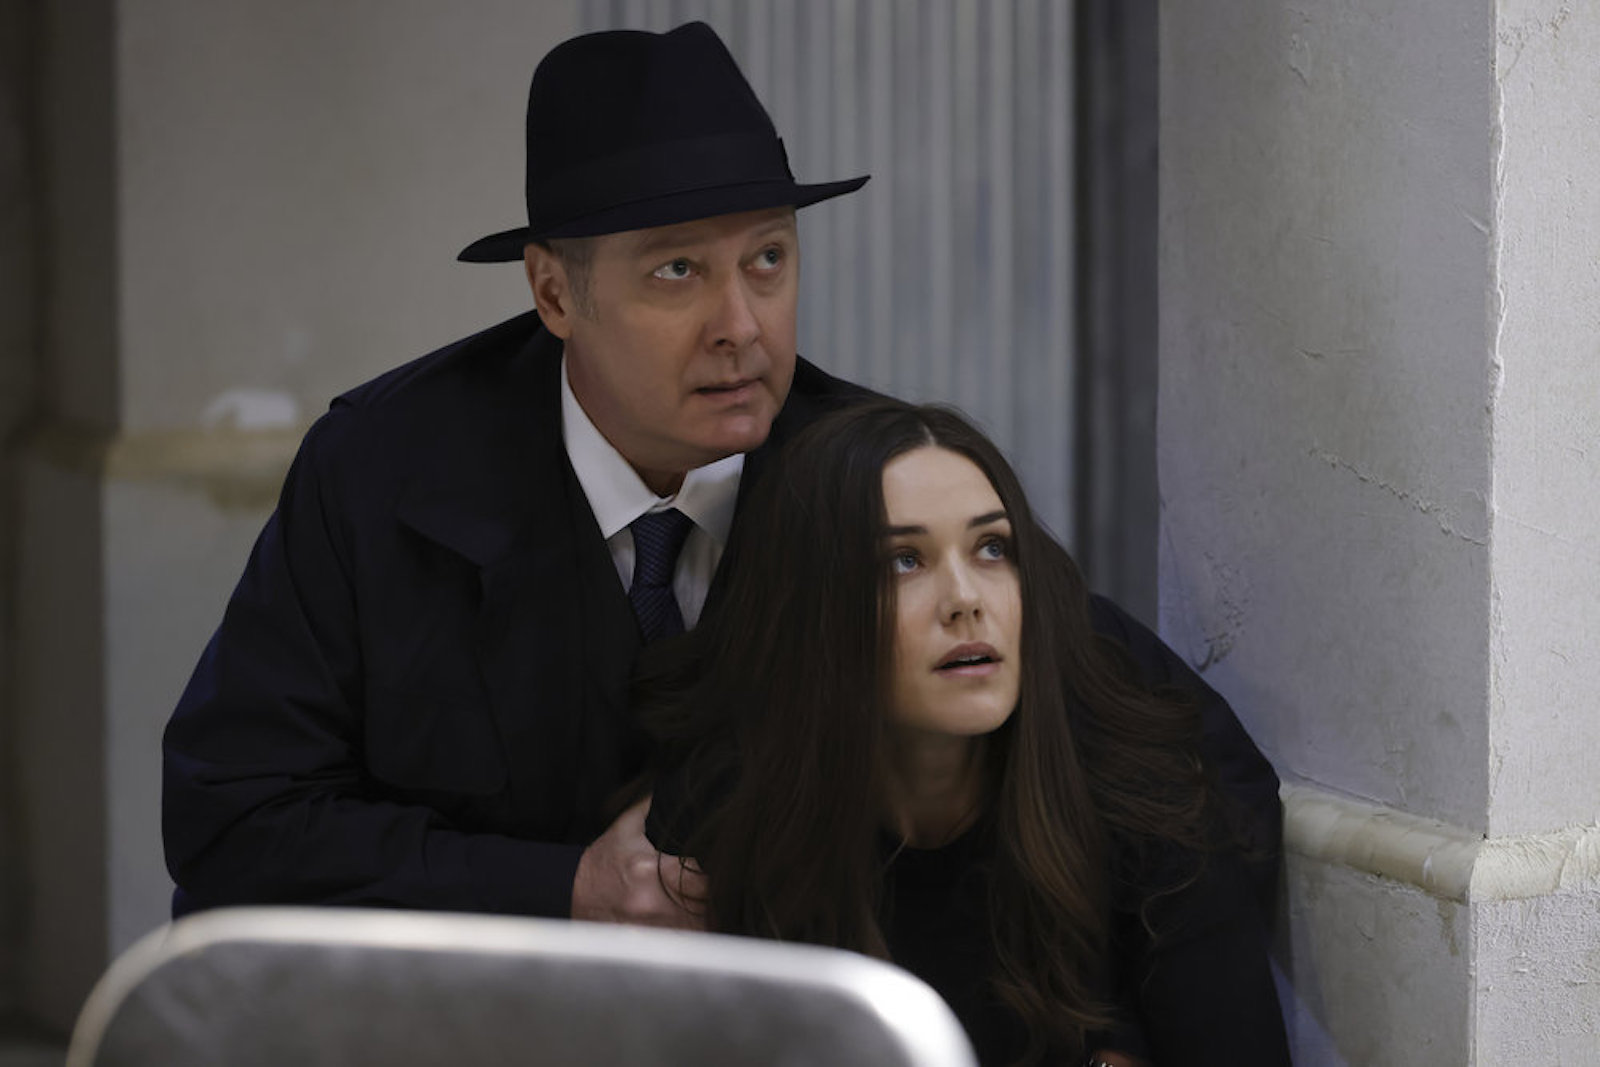 'The Blacklist' bids farewell to star Megan Boone with another irritating twist